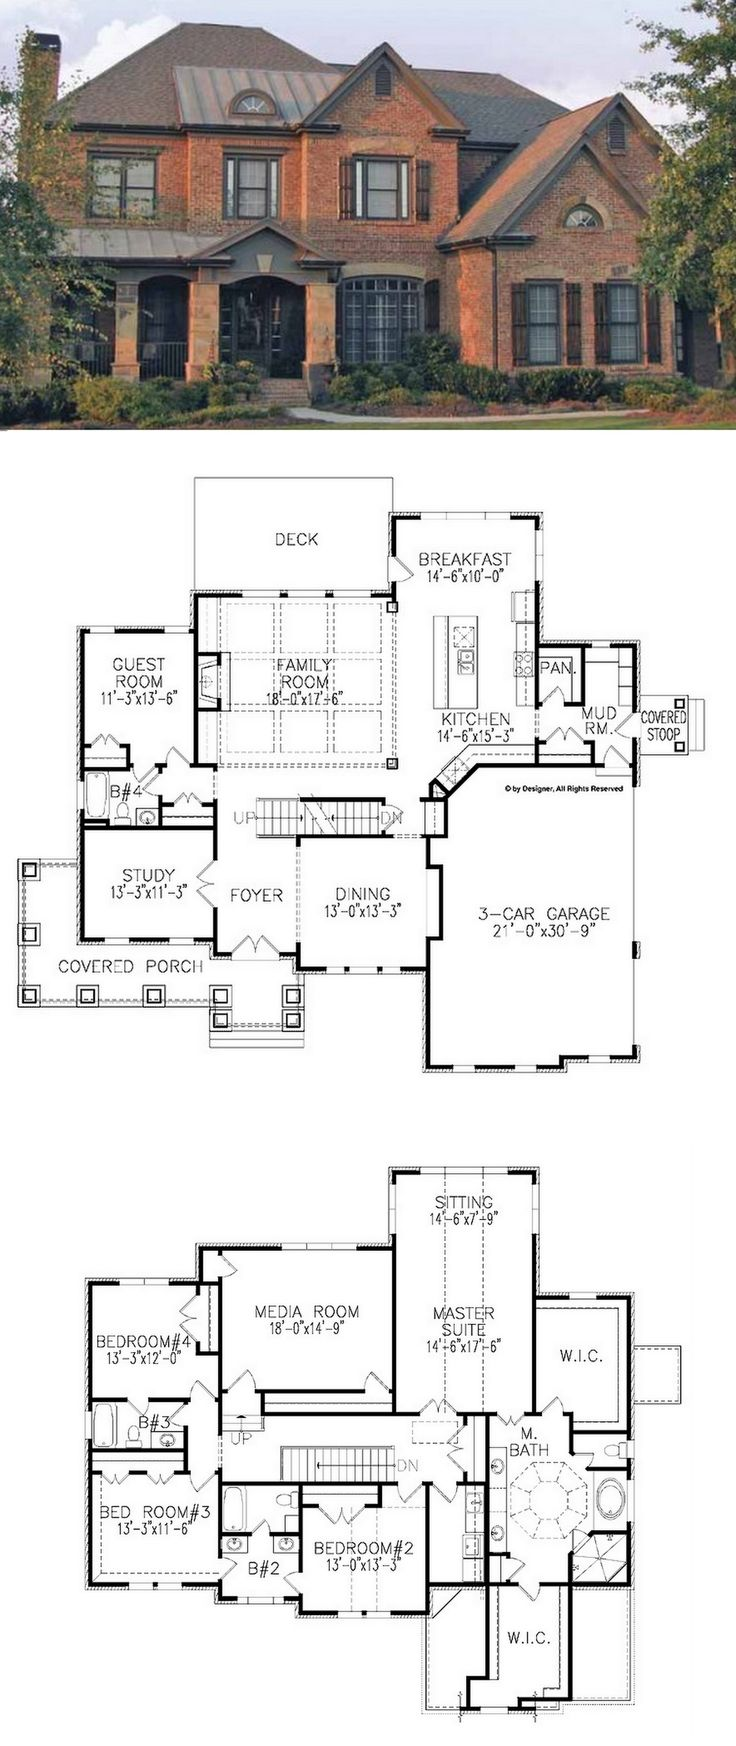 best 25 traditional house plans ideas on pinterest house plans traditional house plan with 3962 square feet and 5 bedrooms from dream home source house